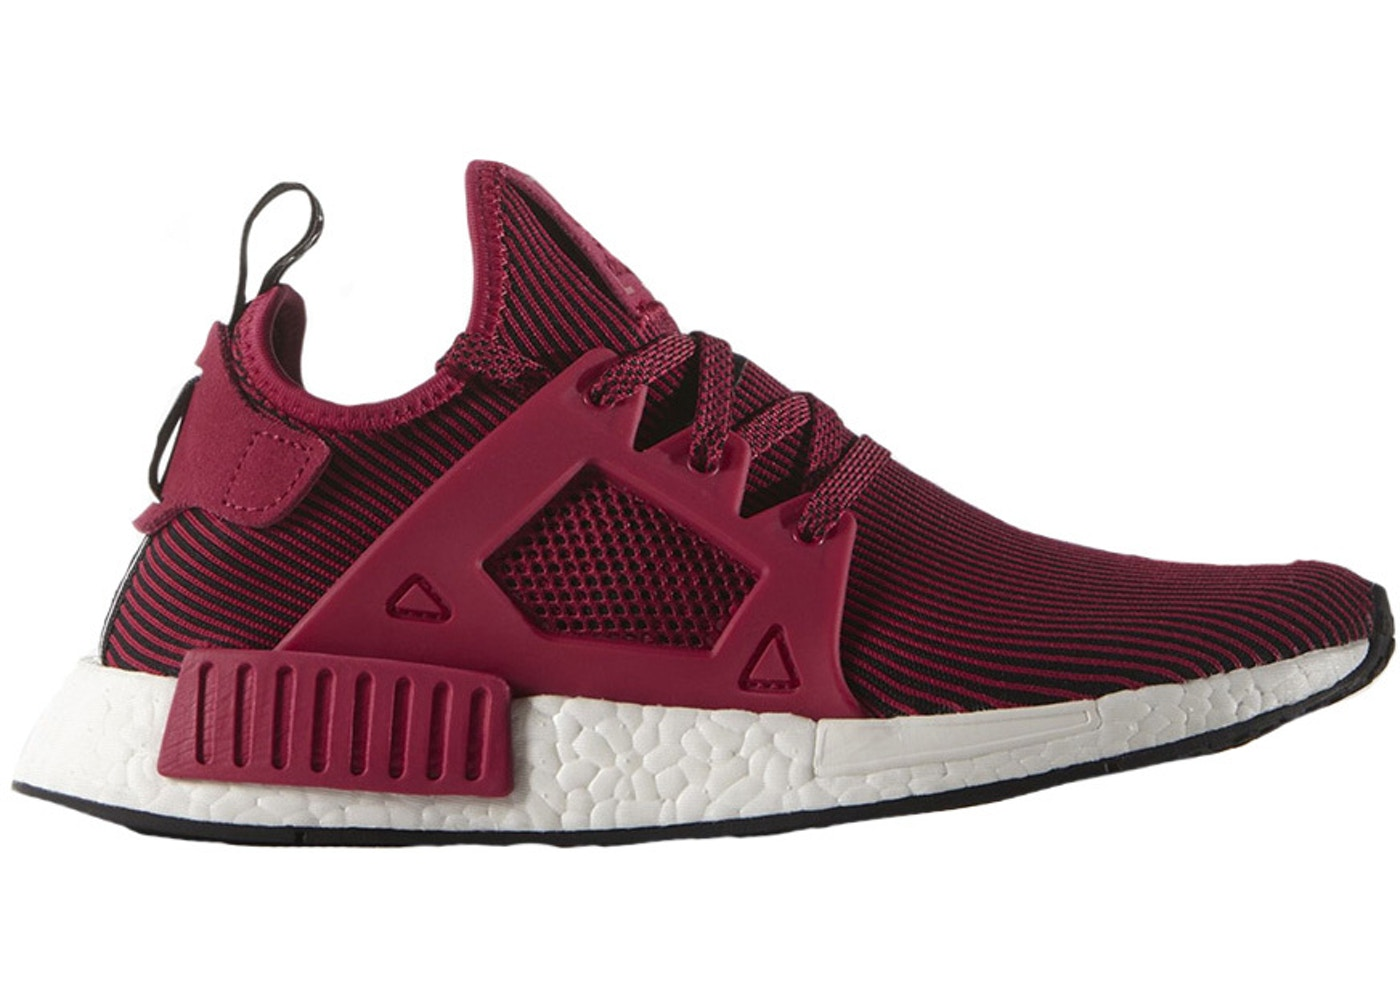 b85301cd0 Sell. or Ask. Size  6.5W. View All Bids. adidas NMD XR1 Unity Pink ...